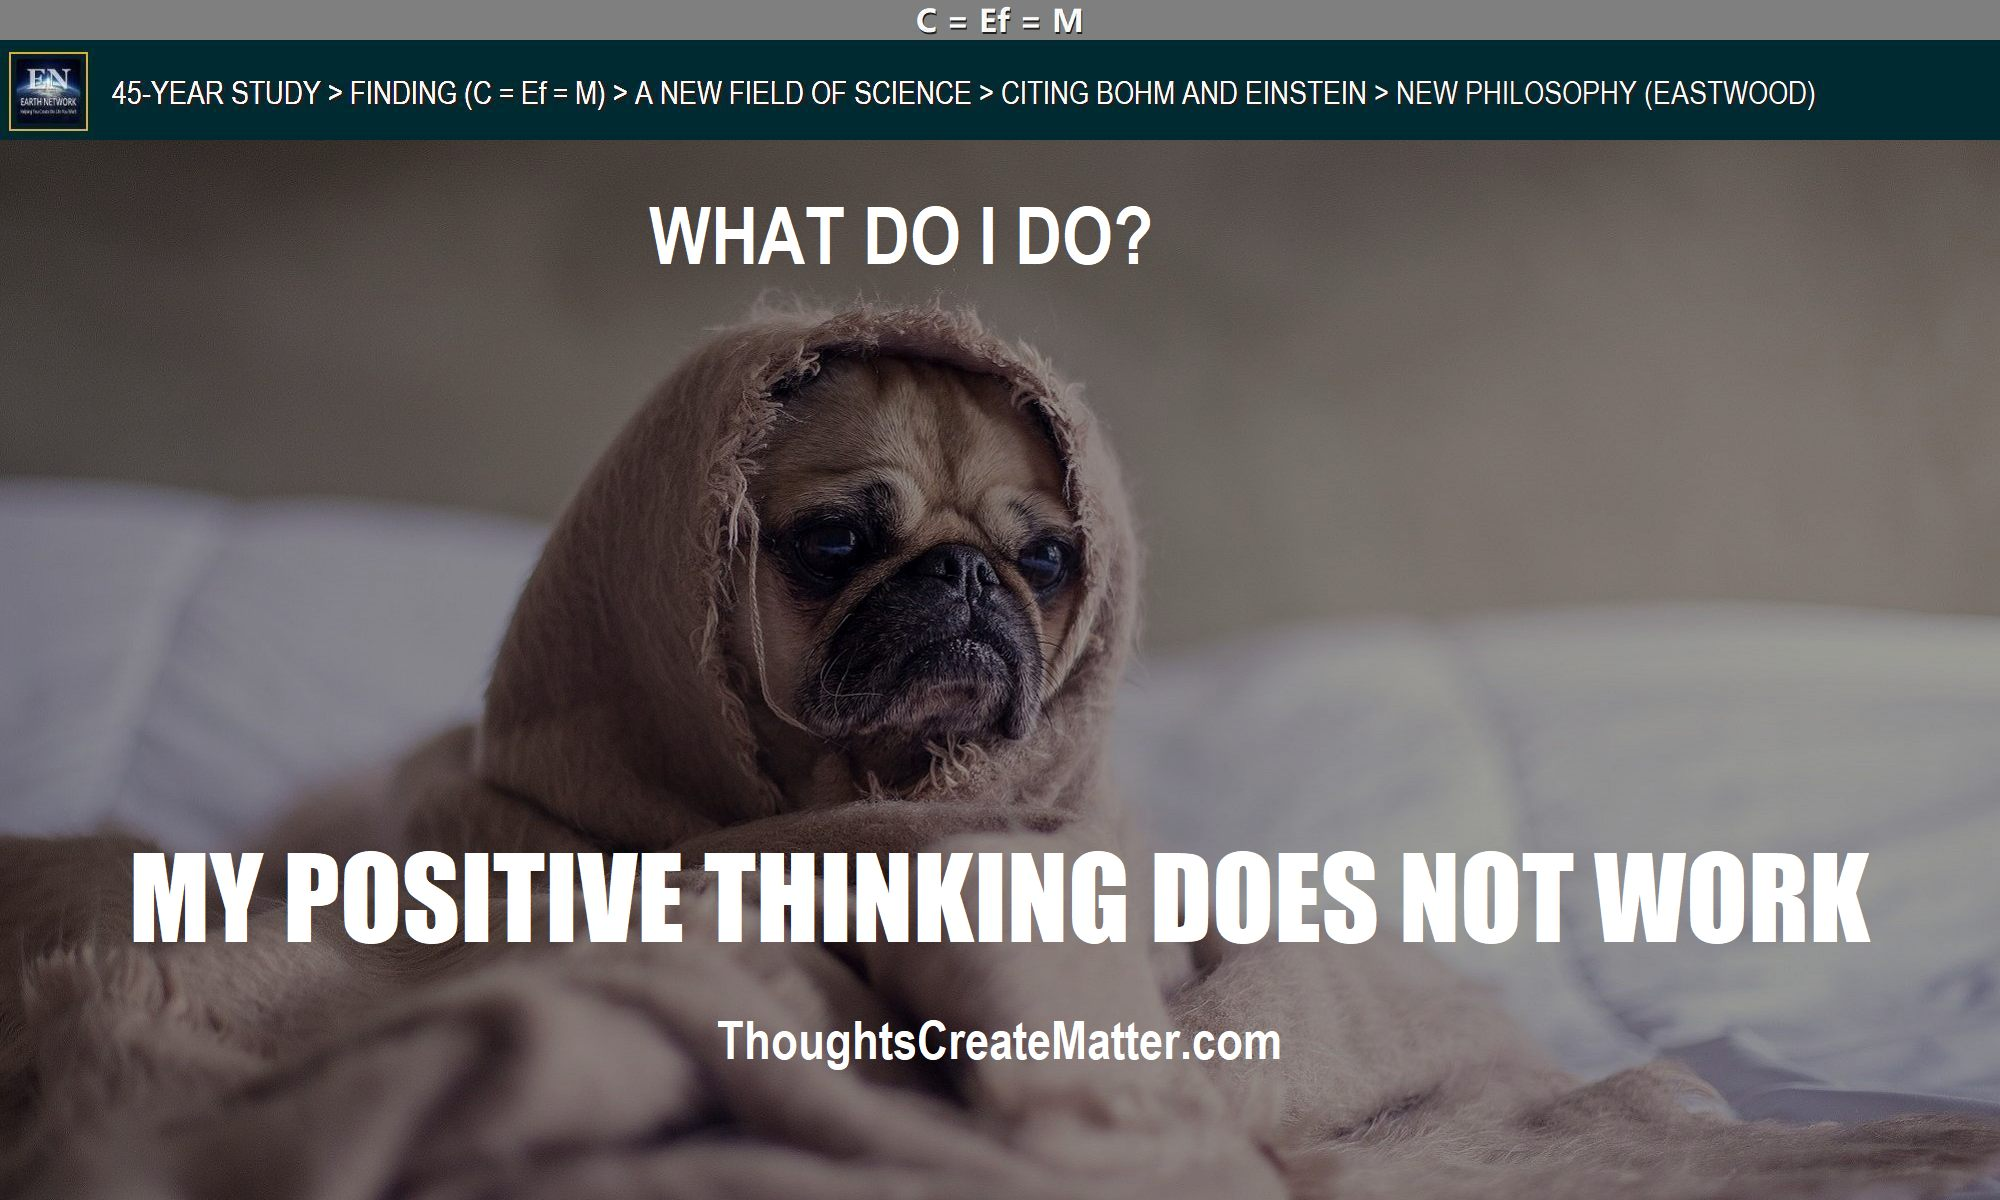 Sad dog suggests positive-thinking-doesnt-work-no-results-whats-the-solution